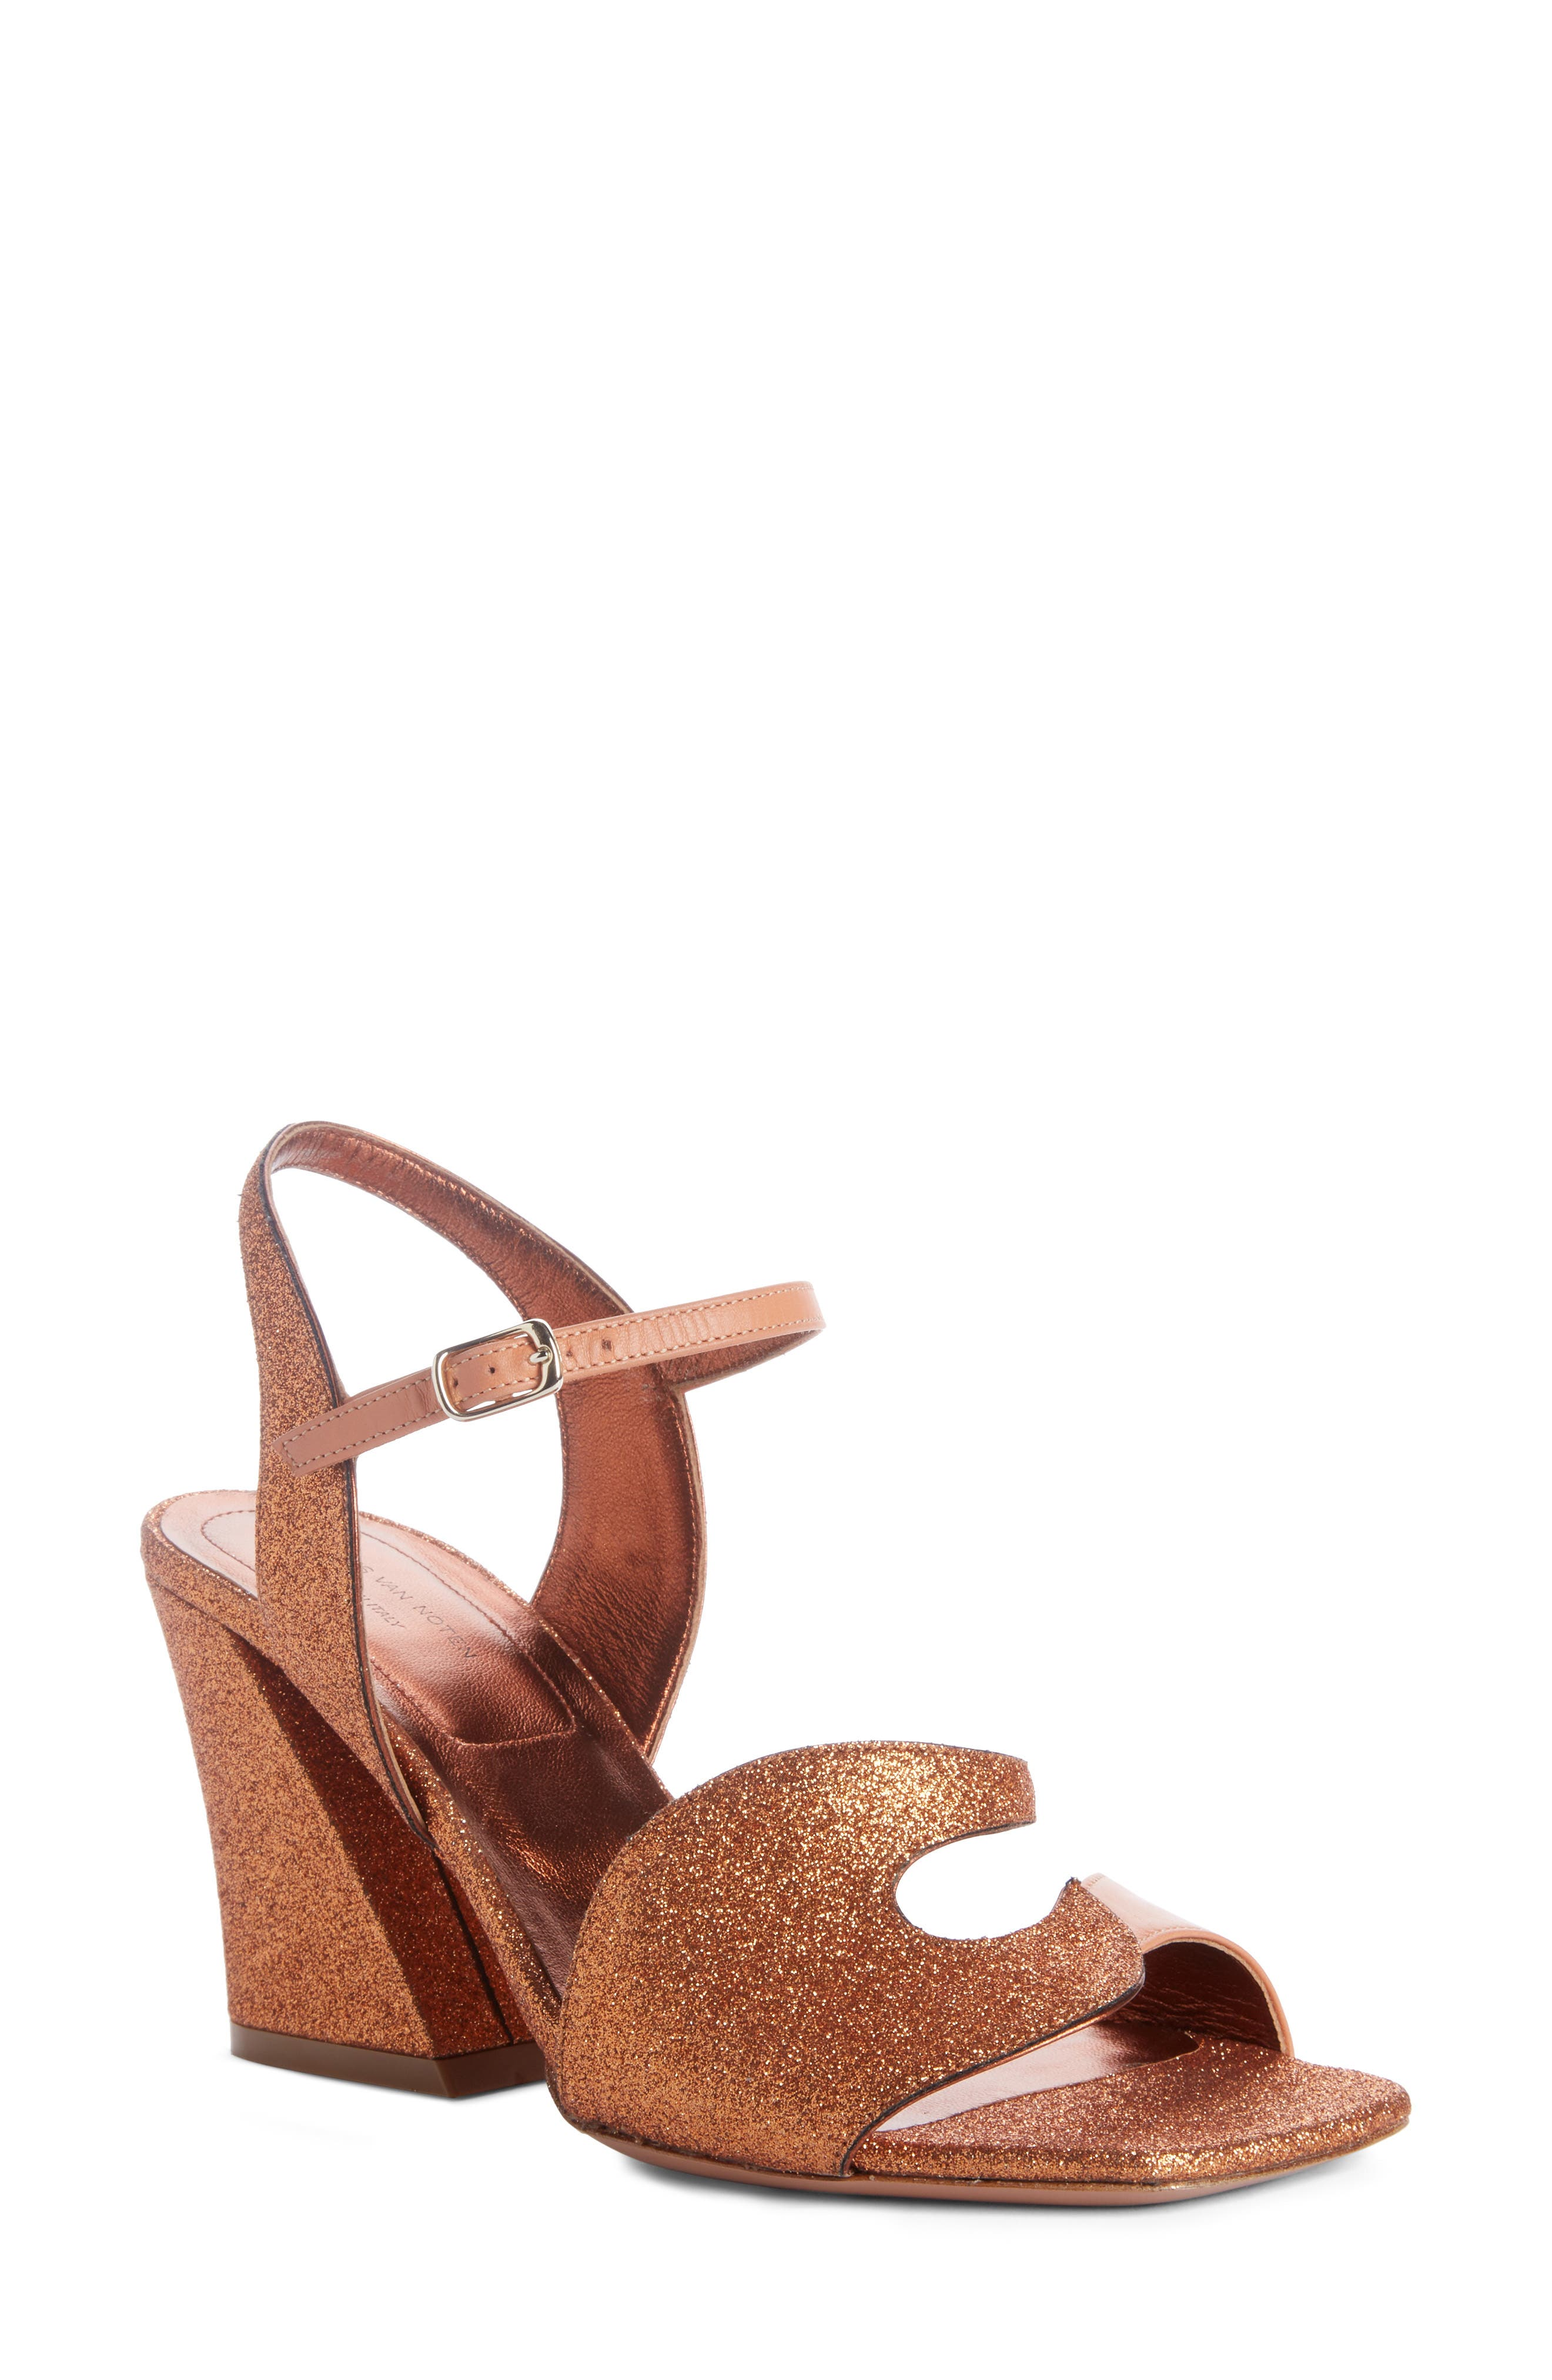 Dries Van Noten Ankle Strap Sandal (Women)